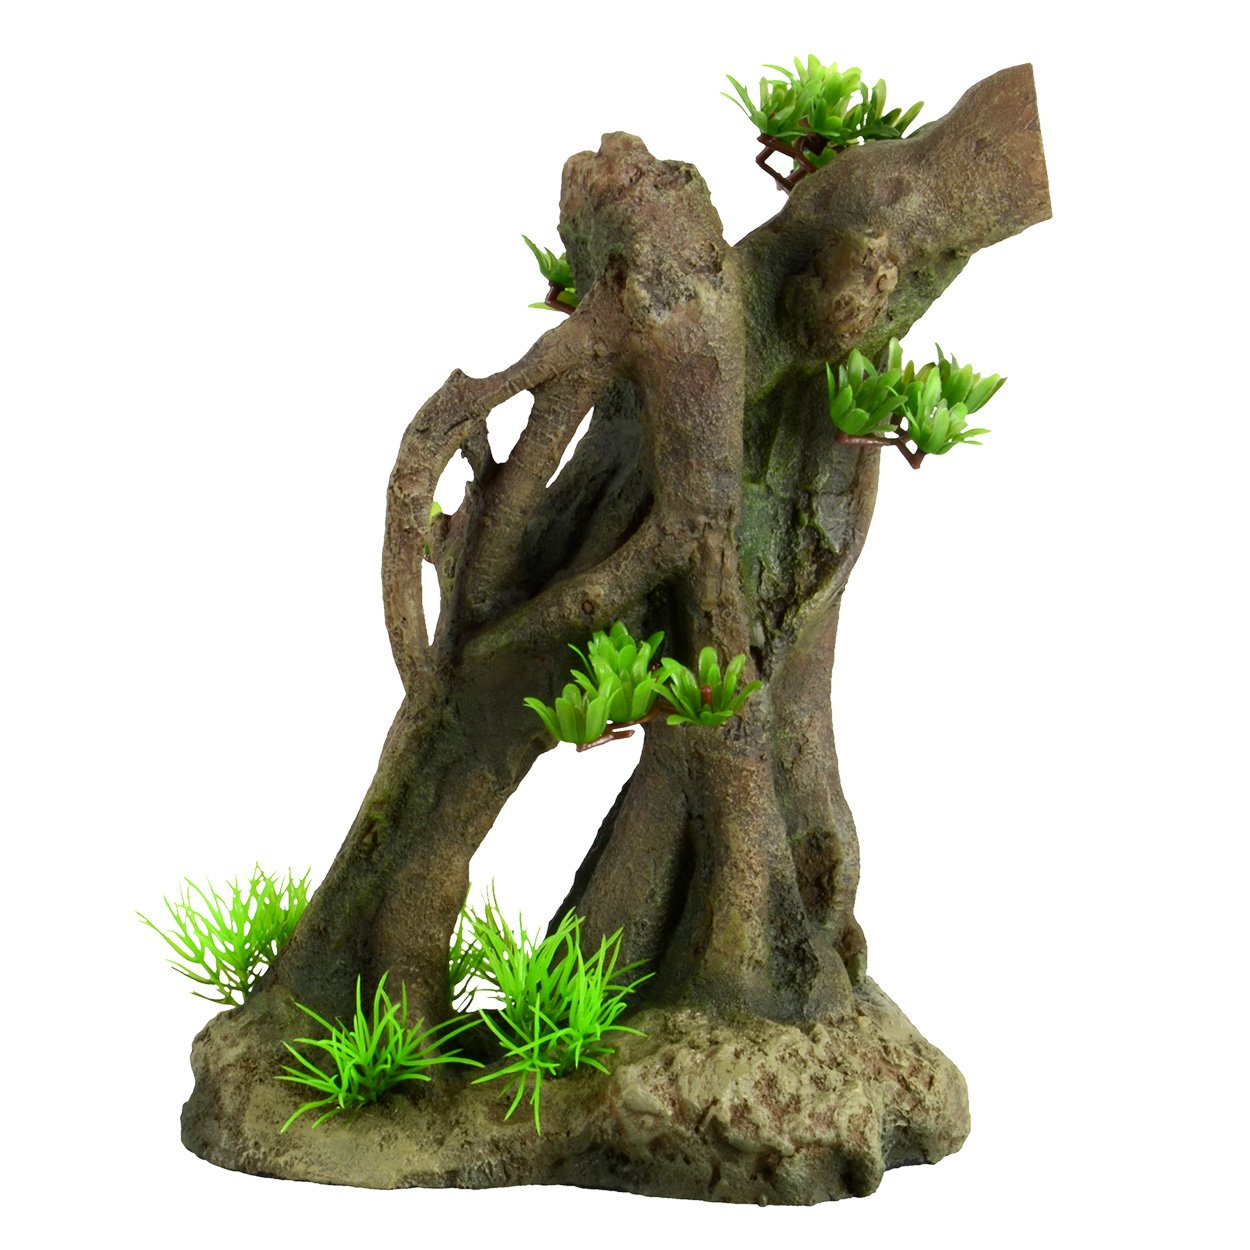 Underwater Treasures 65273 Tree Root Aquarium Ornament by Underwater Treasures